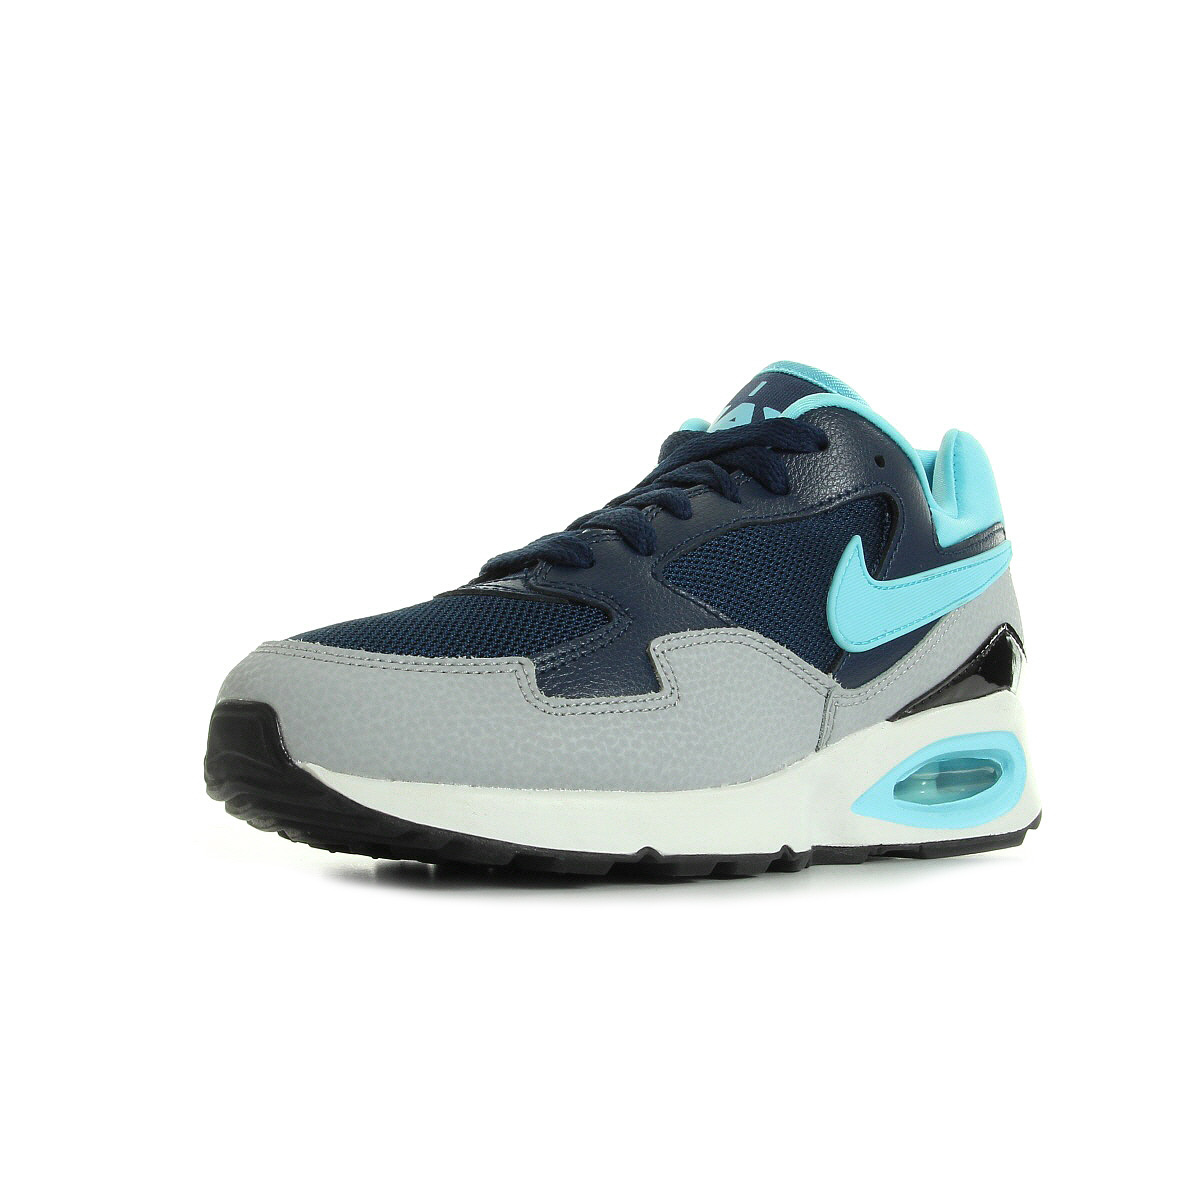 chaussures baskets nike femme air max st taille gris grise textile lacets ebay. Black Bedroom Furniture Sets. Home Design Ideas